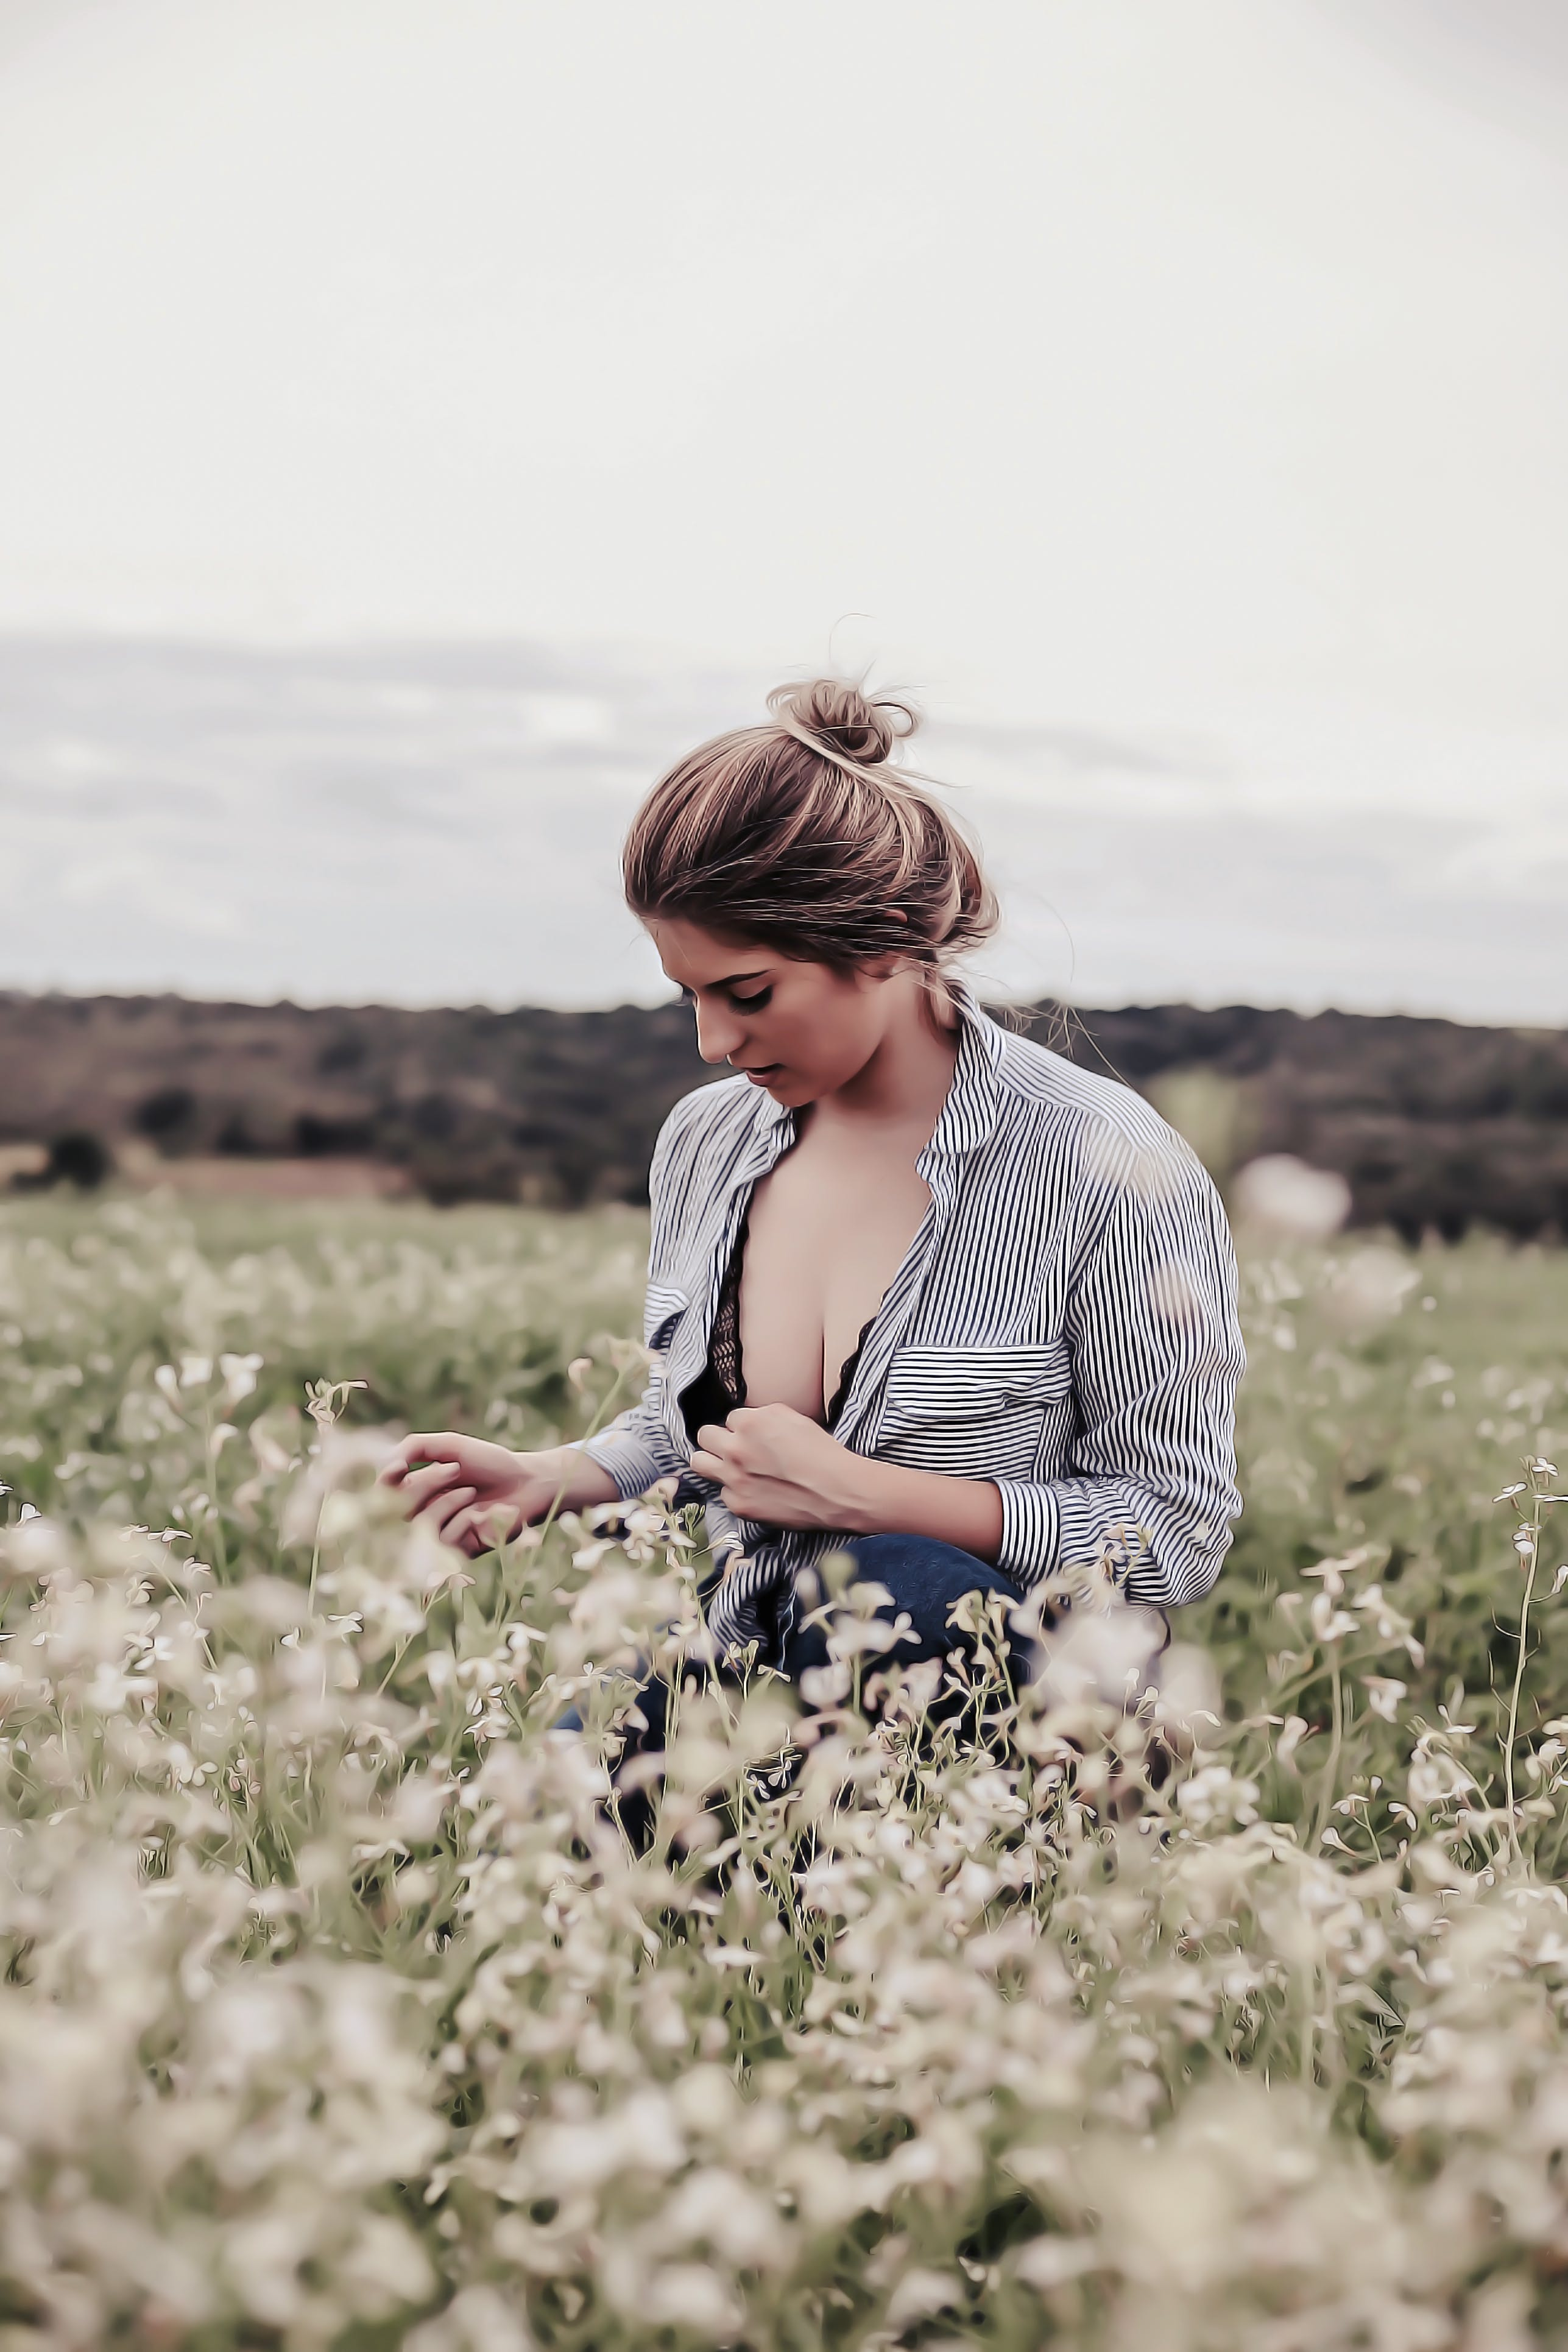 Photo of Woman With Opened Cleavage Knelling in the Middle of Grass Field